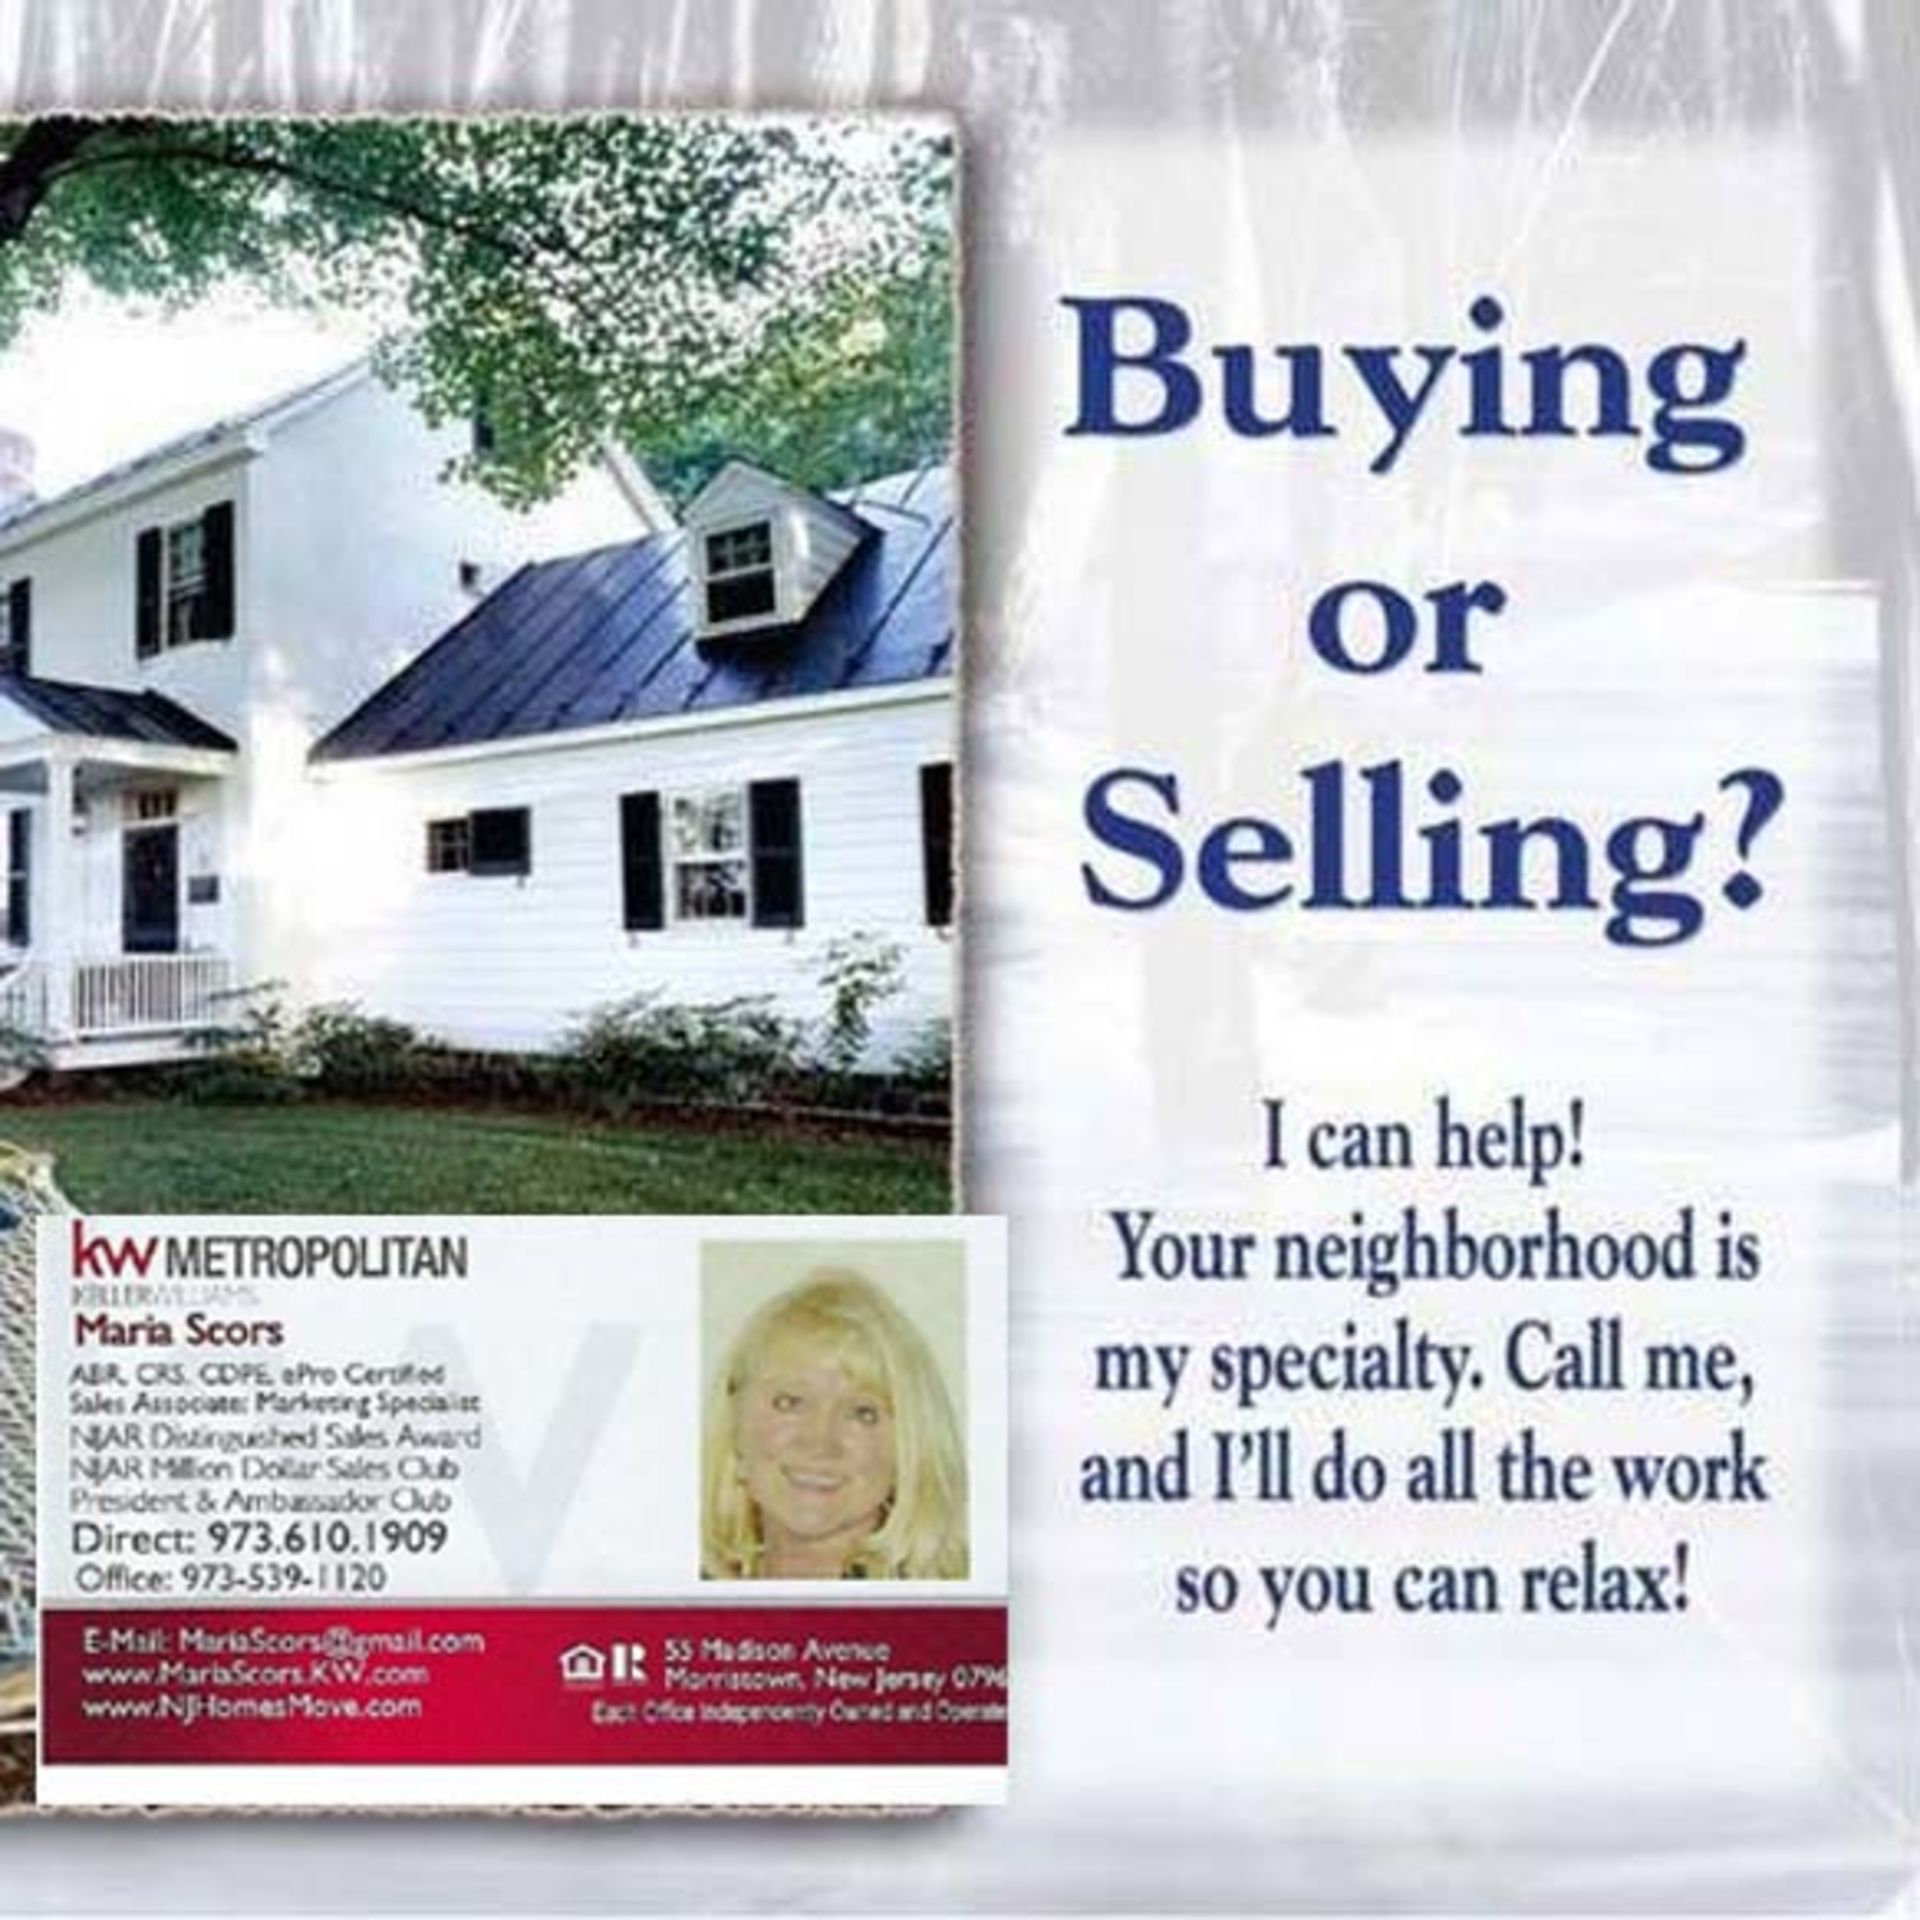 The 10 Sins Of Selling a Home